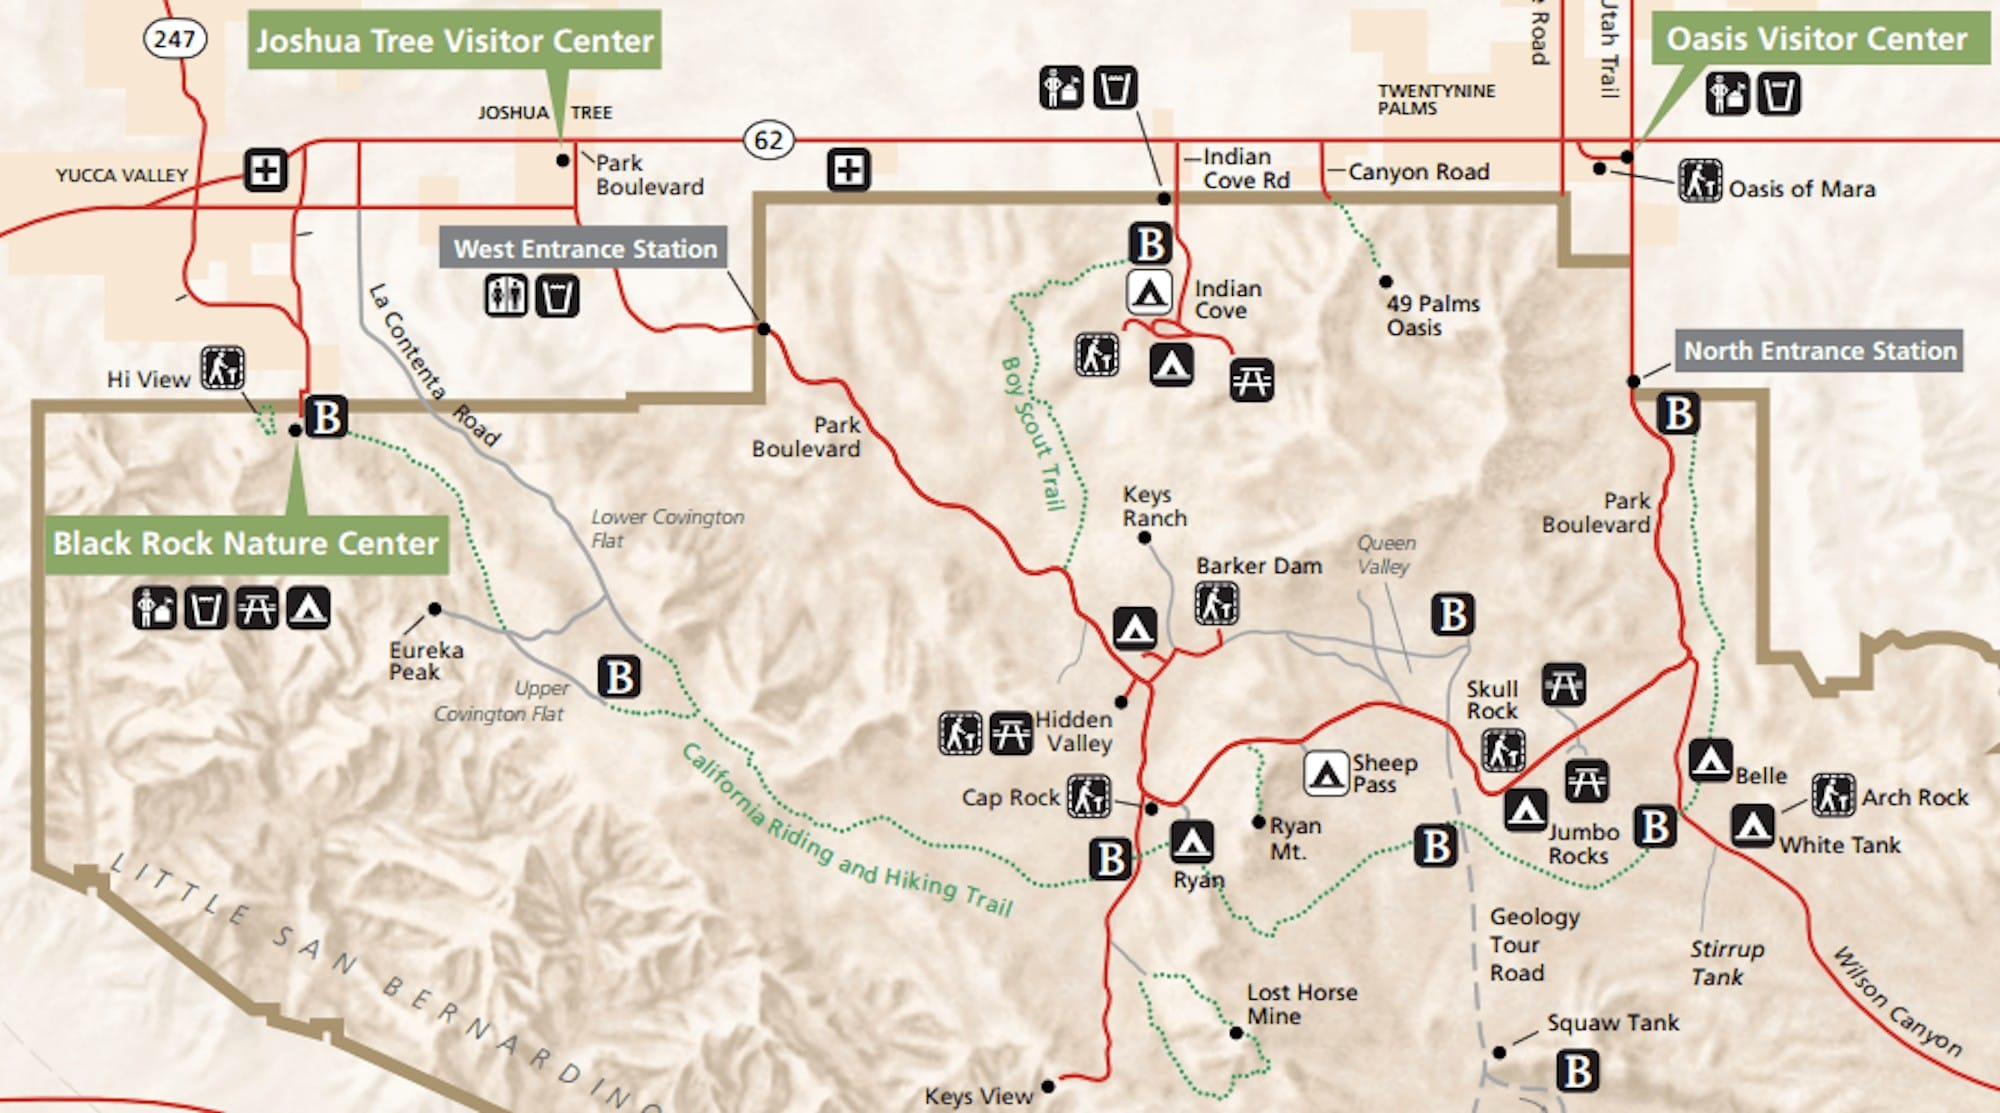 Plan a Joshua Tree backpacking trip w/ this detailed guide and itinerary to the 35 mile California Hiking & Riding Trail, w/ info on gear & water caches // Joshua Tree map